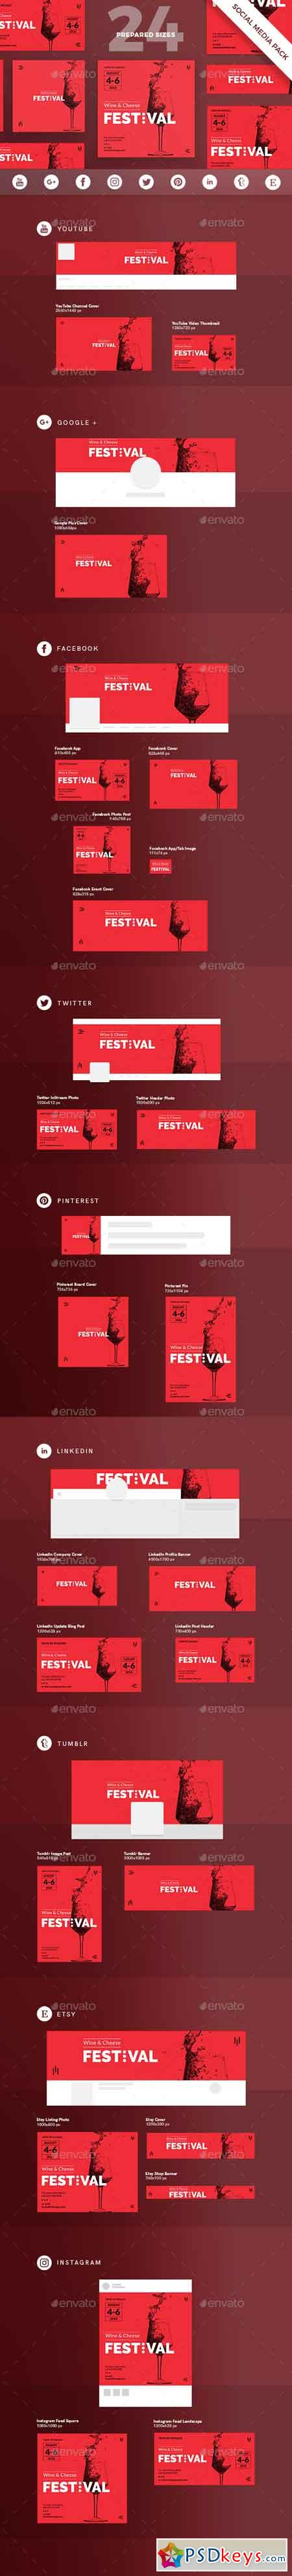 Wine Festival Social Media Pack Template 20903311